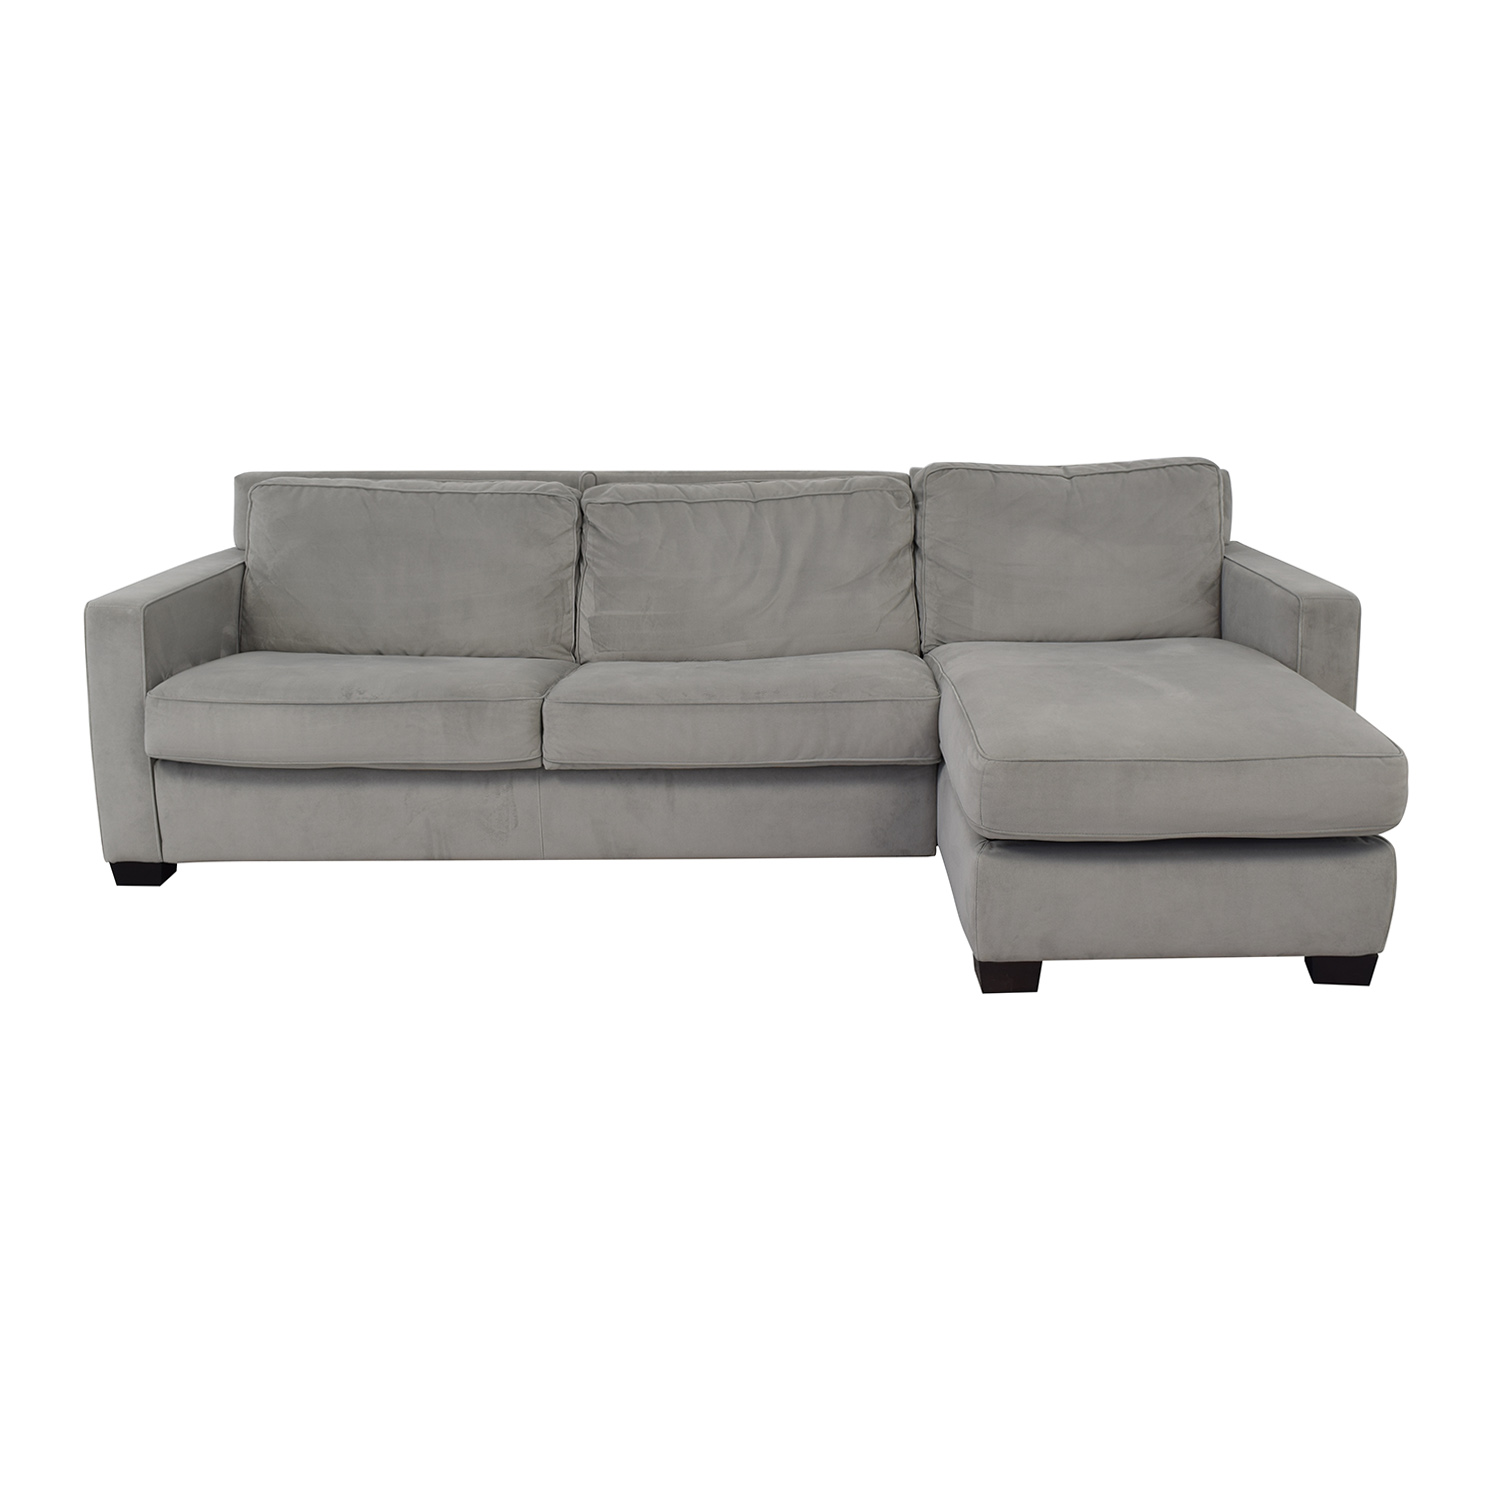 shop West Elm West Elm Henry Sectional Sofa Bed with Storage online